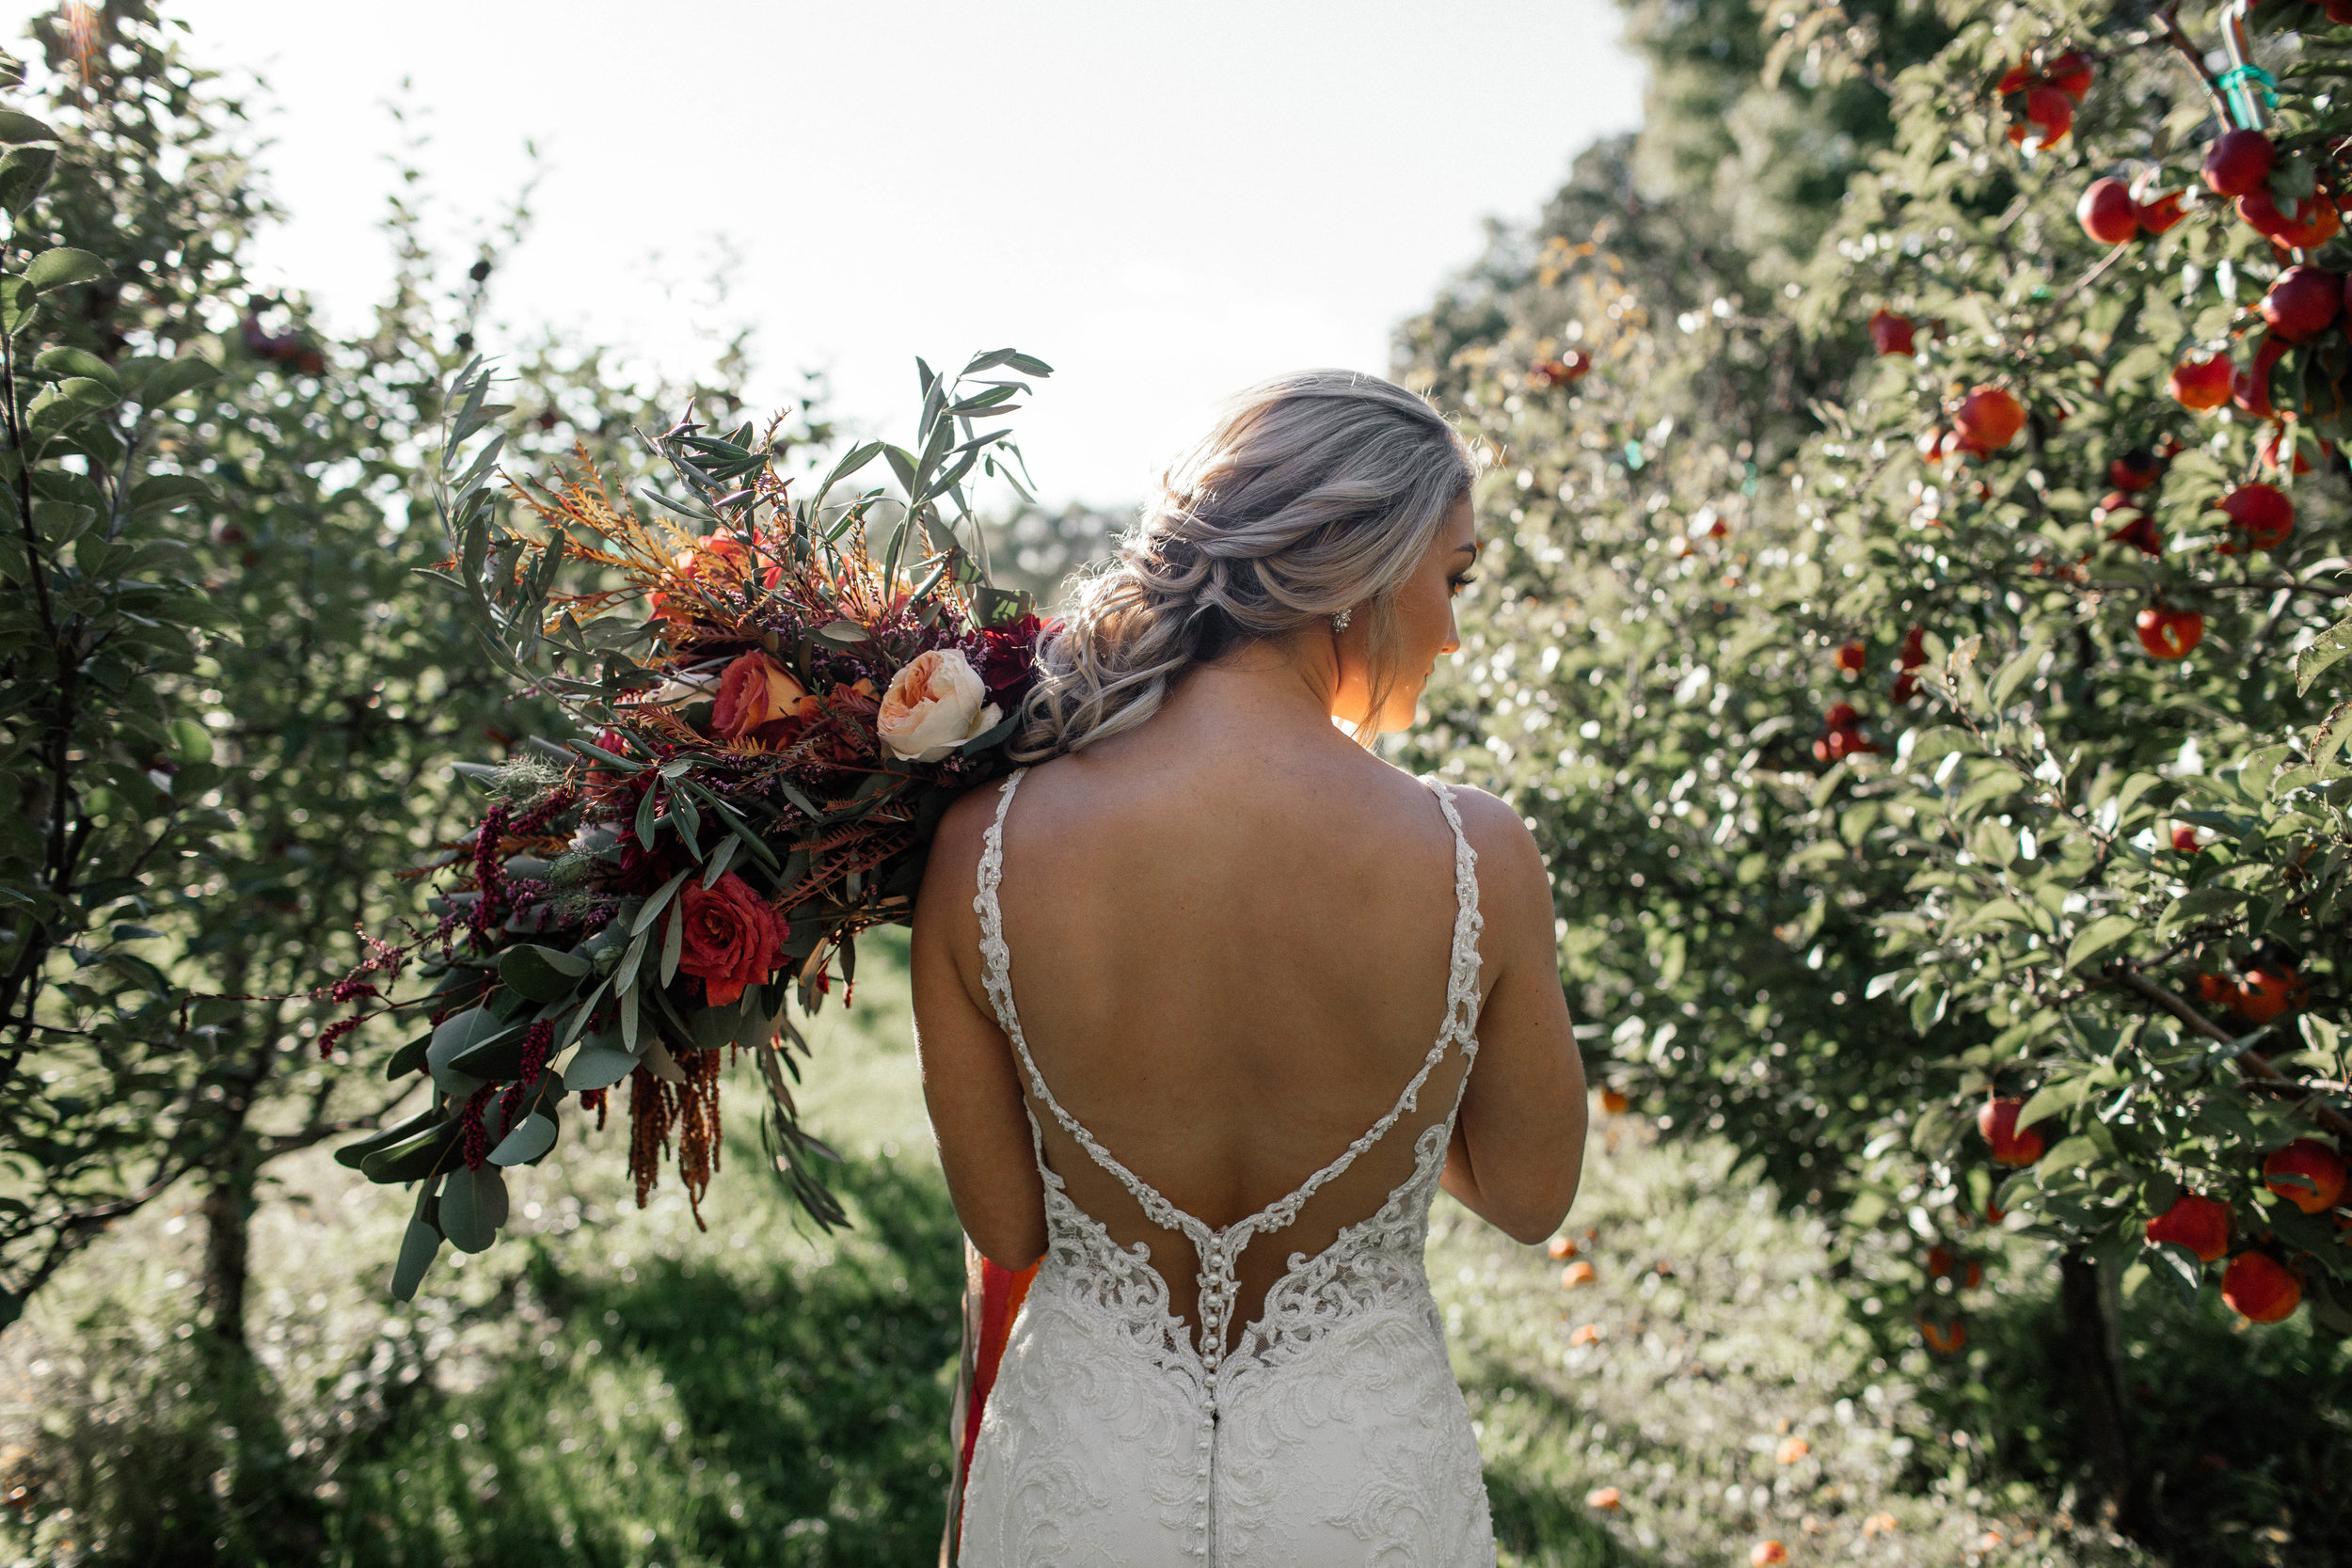 Bridal Accents Couture Wedding Gown Bridal Portrait shot in an apple orchard